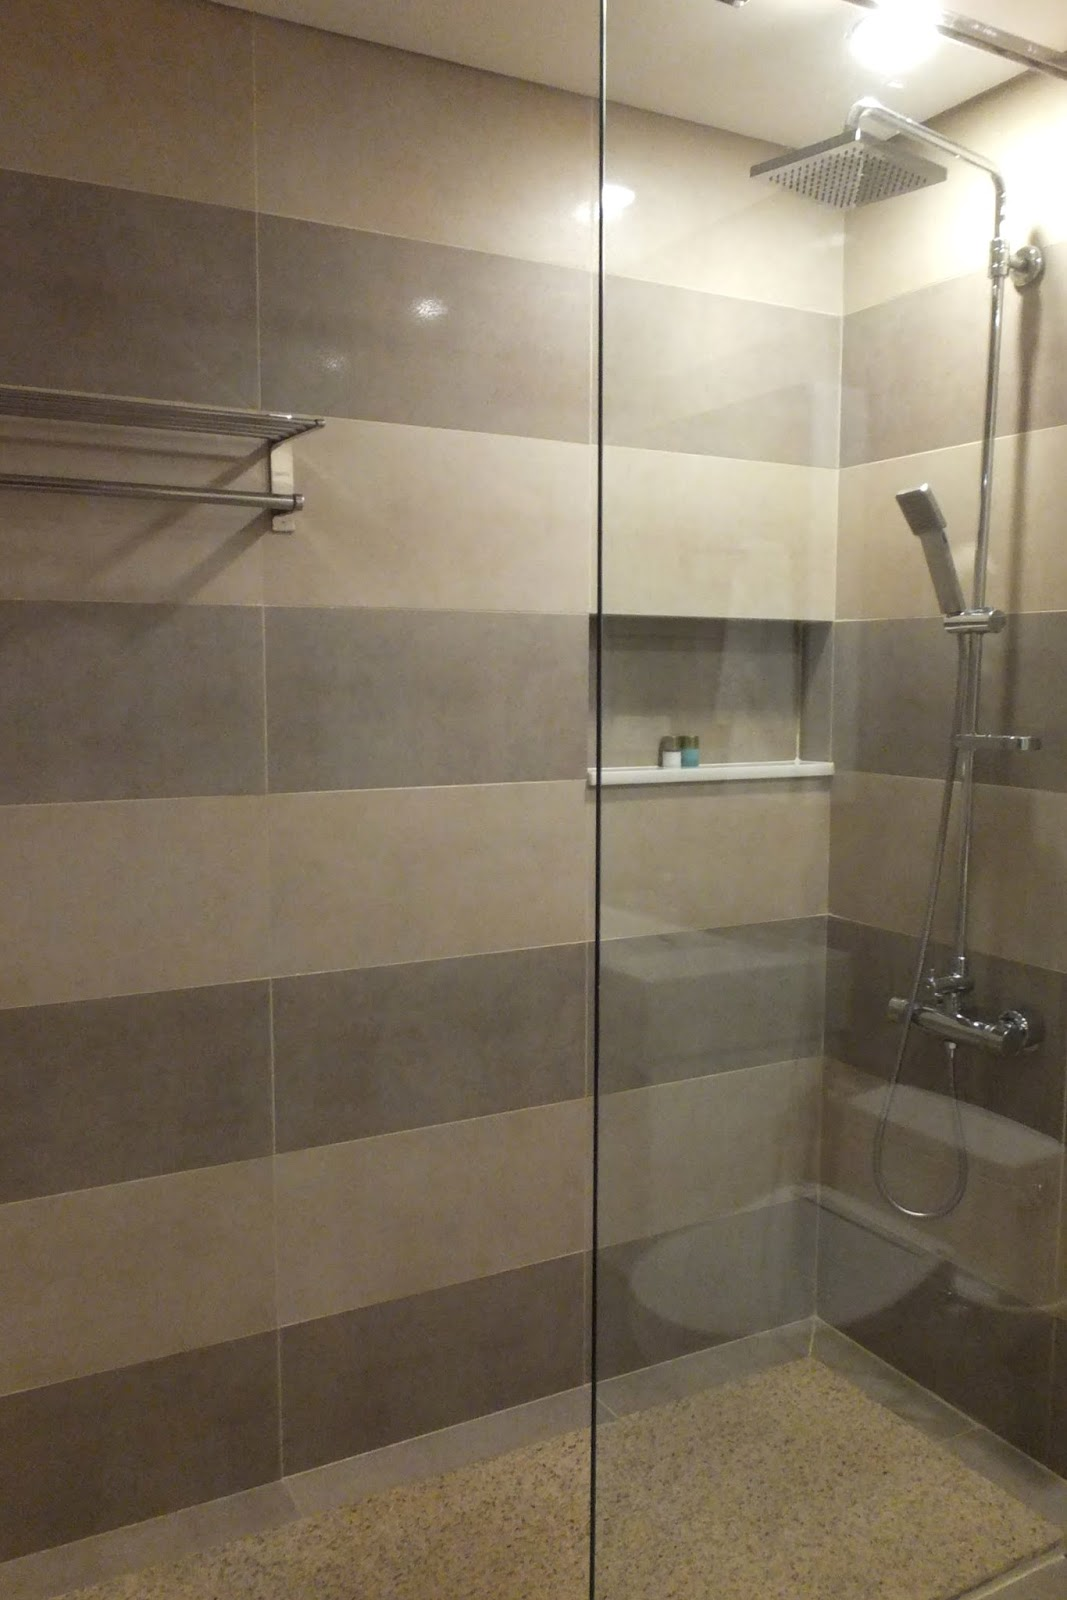 hcmc-serviced-apartment-showerroom